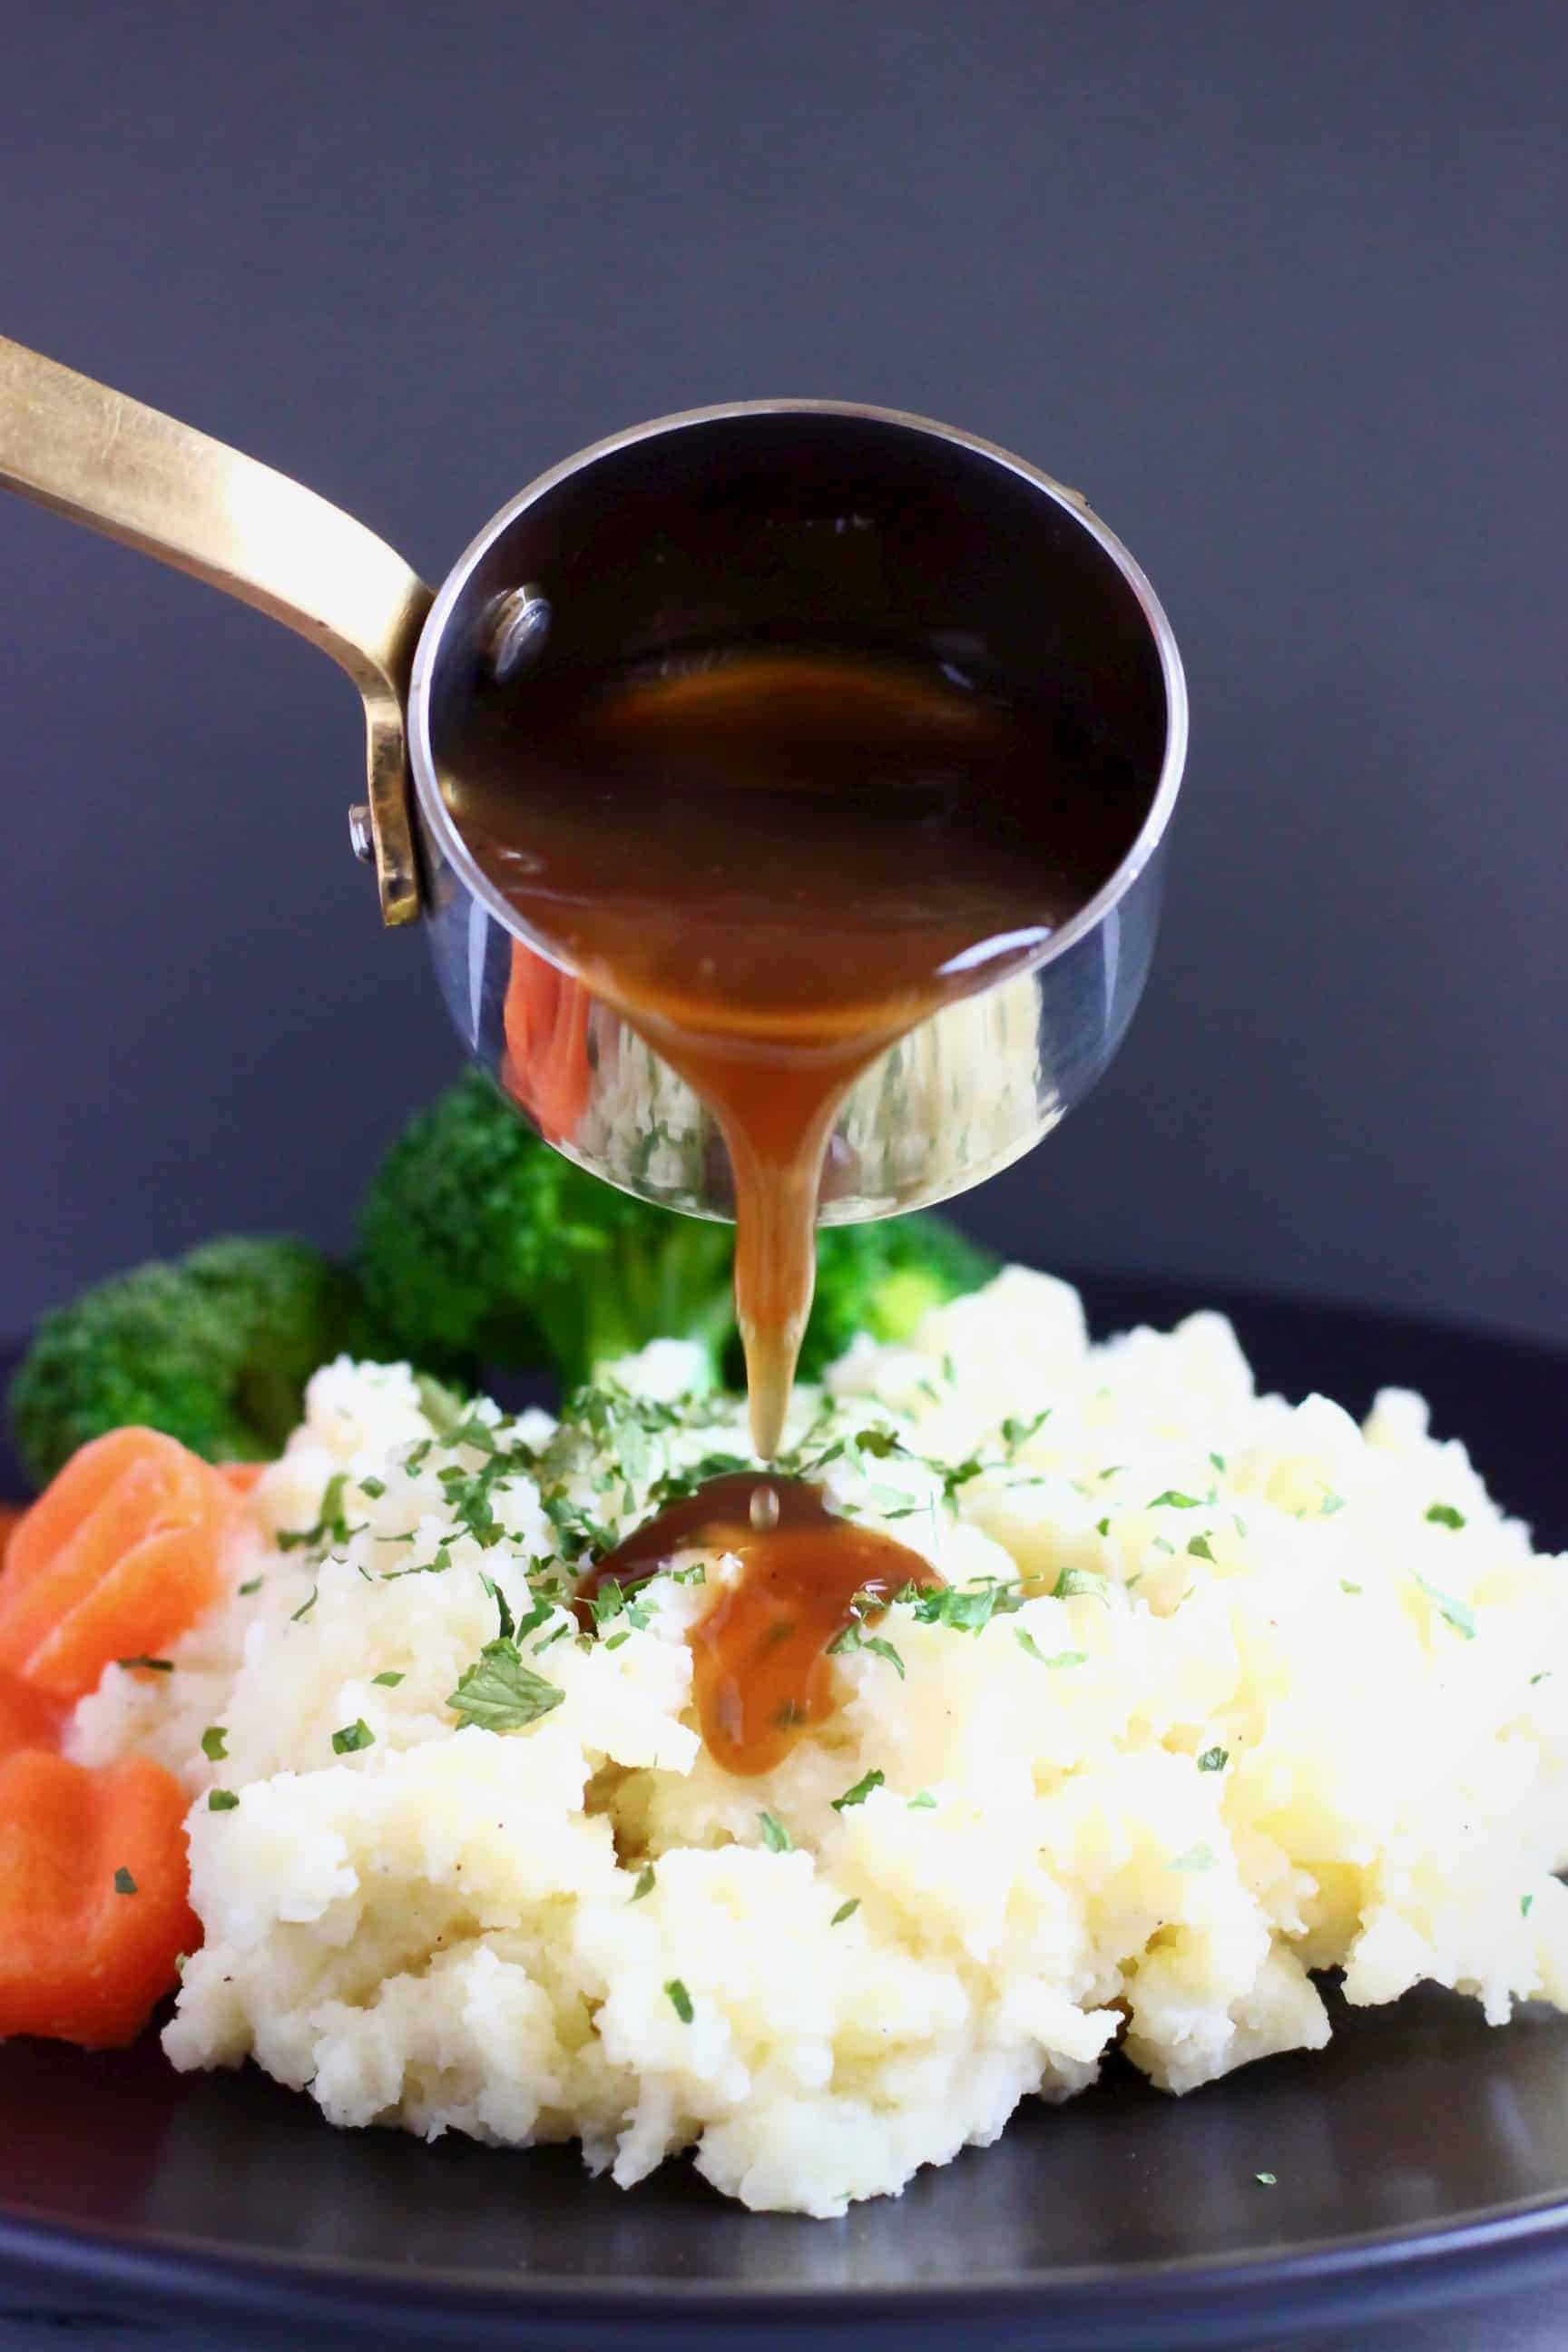 A pile of vegan mashed potatoes topped with green herbs with sliced carrots and broccoli on a black plate with brown gravy being poured over in a small saucepan